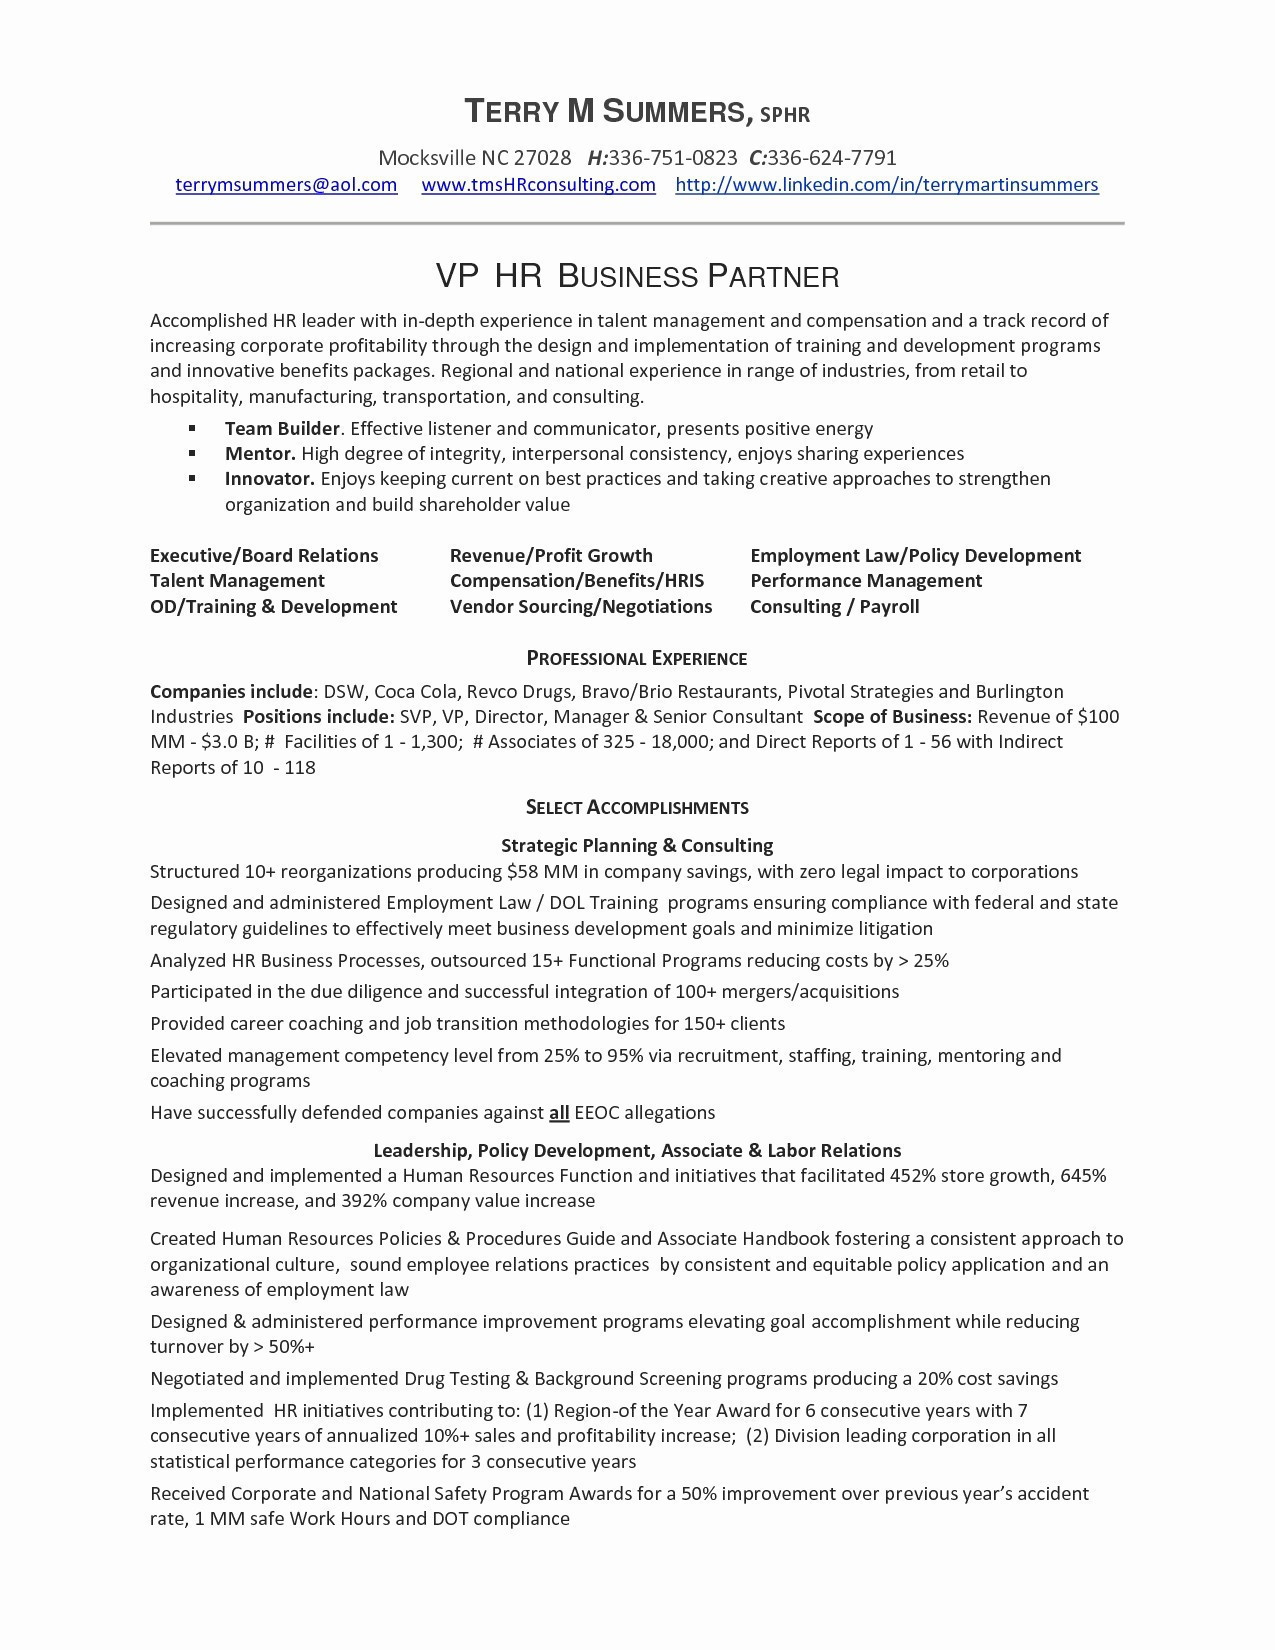 Resumes for Construction Workers - Resume Templates for Construction Workers Fresh Construction Worker